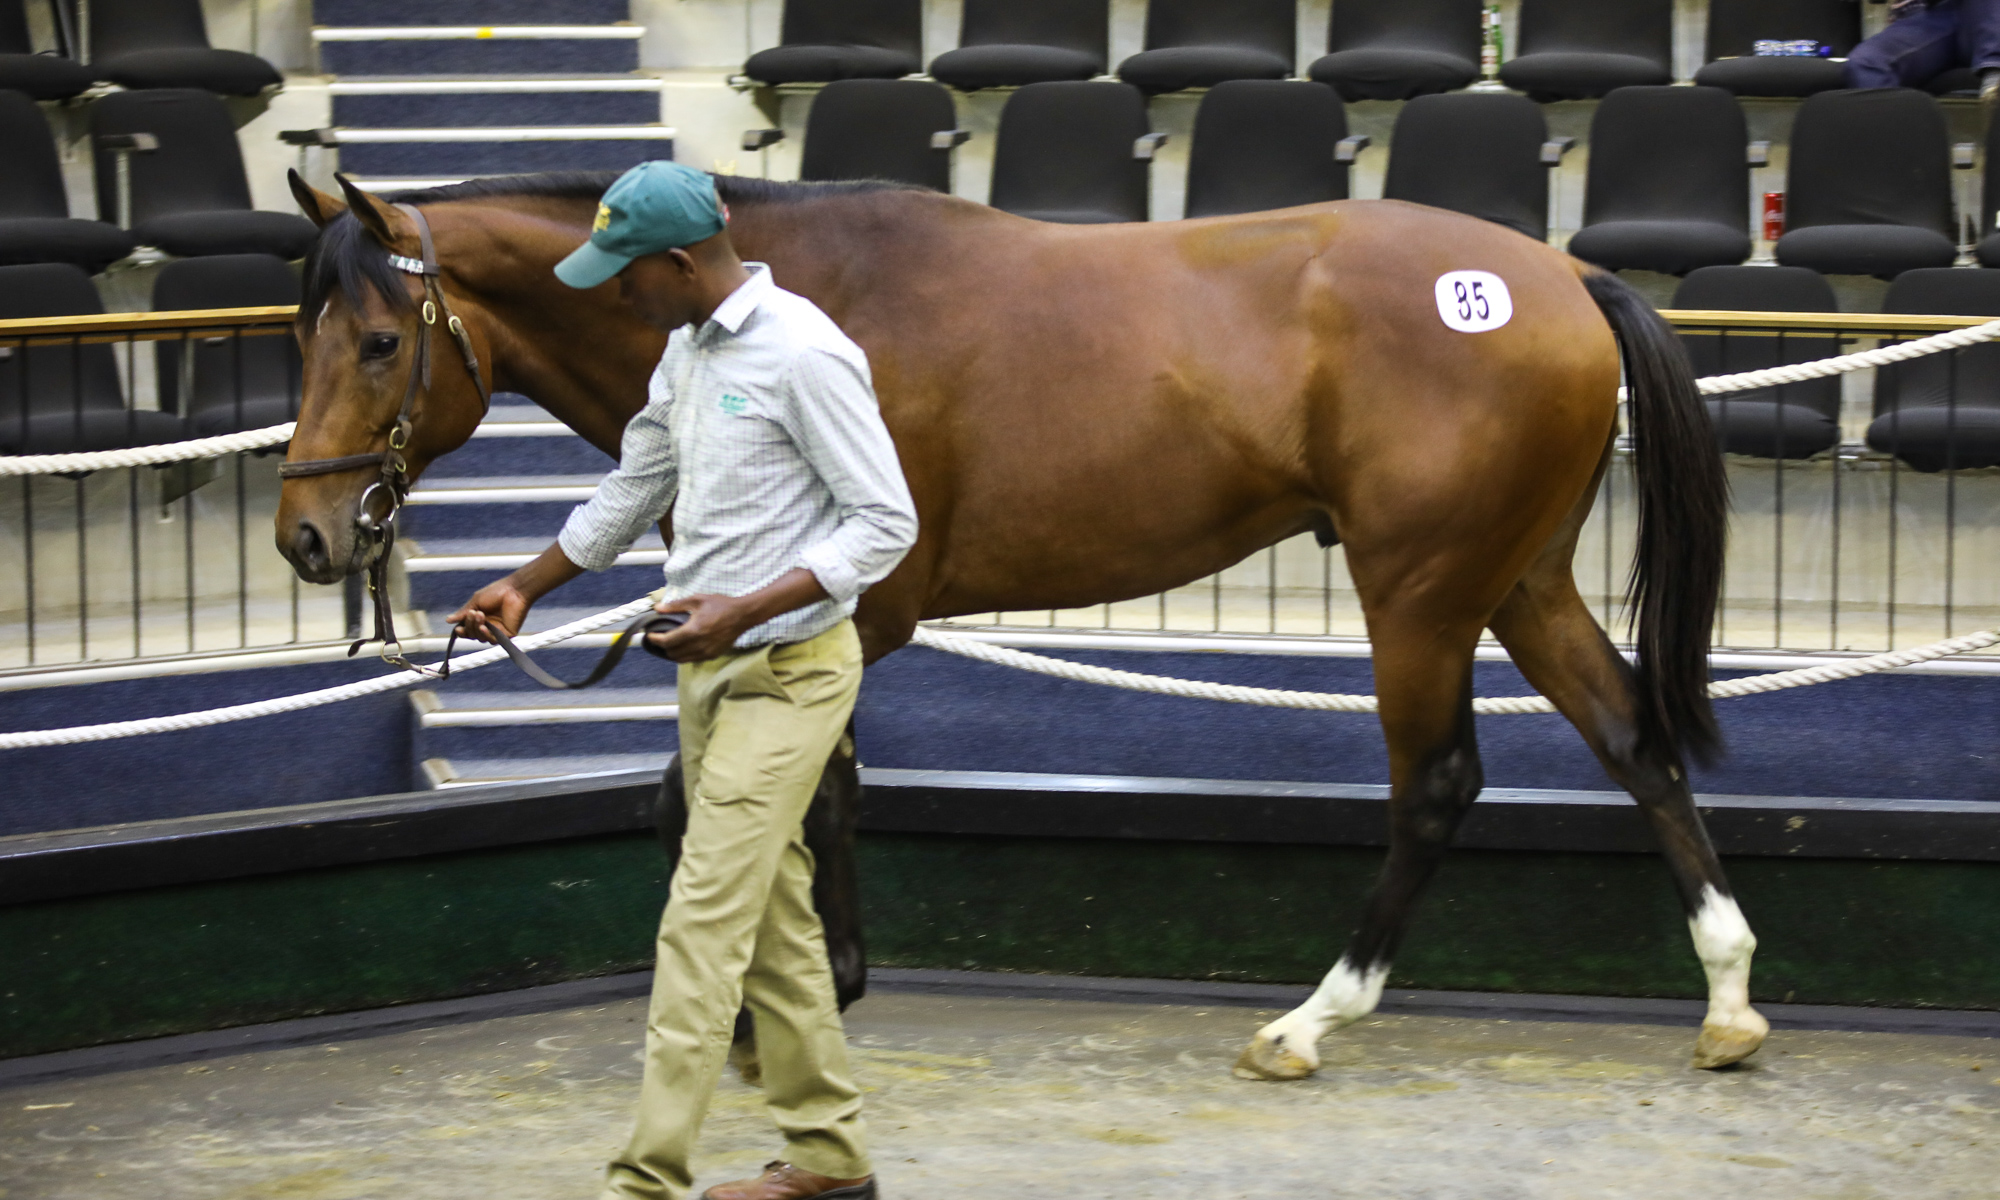 The sales topper - Lot 85 Hurricane Harry, the half-brother to Rabada who sold for R2,3-million. Images: Candiese Marnewick